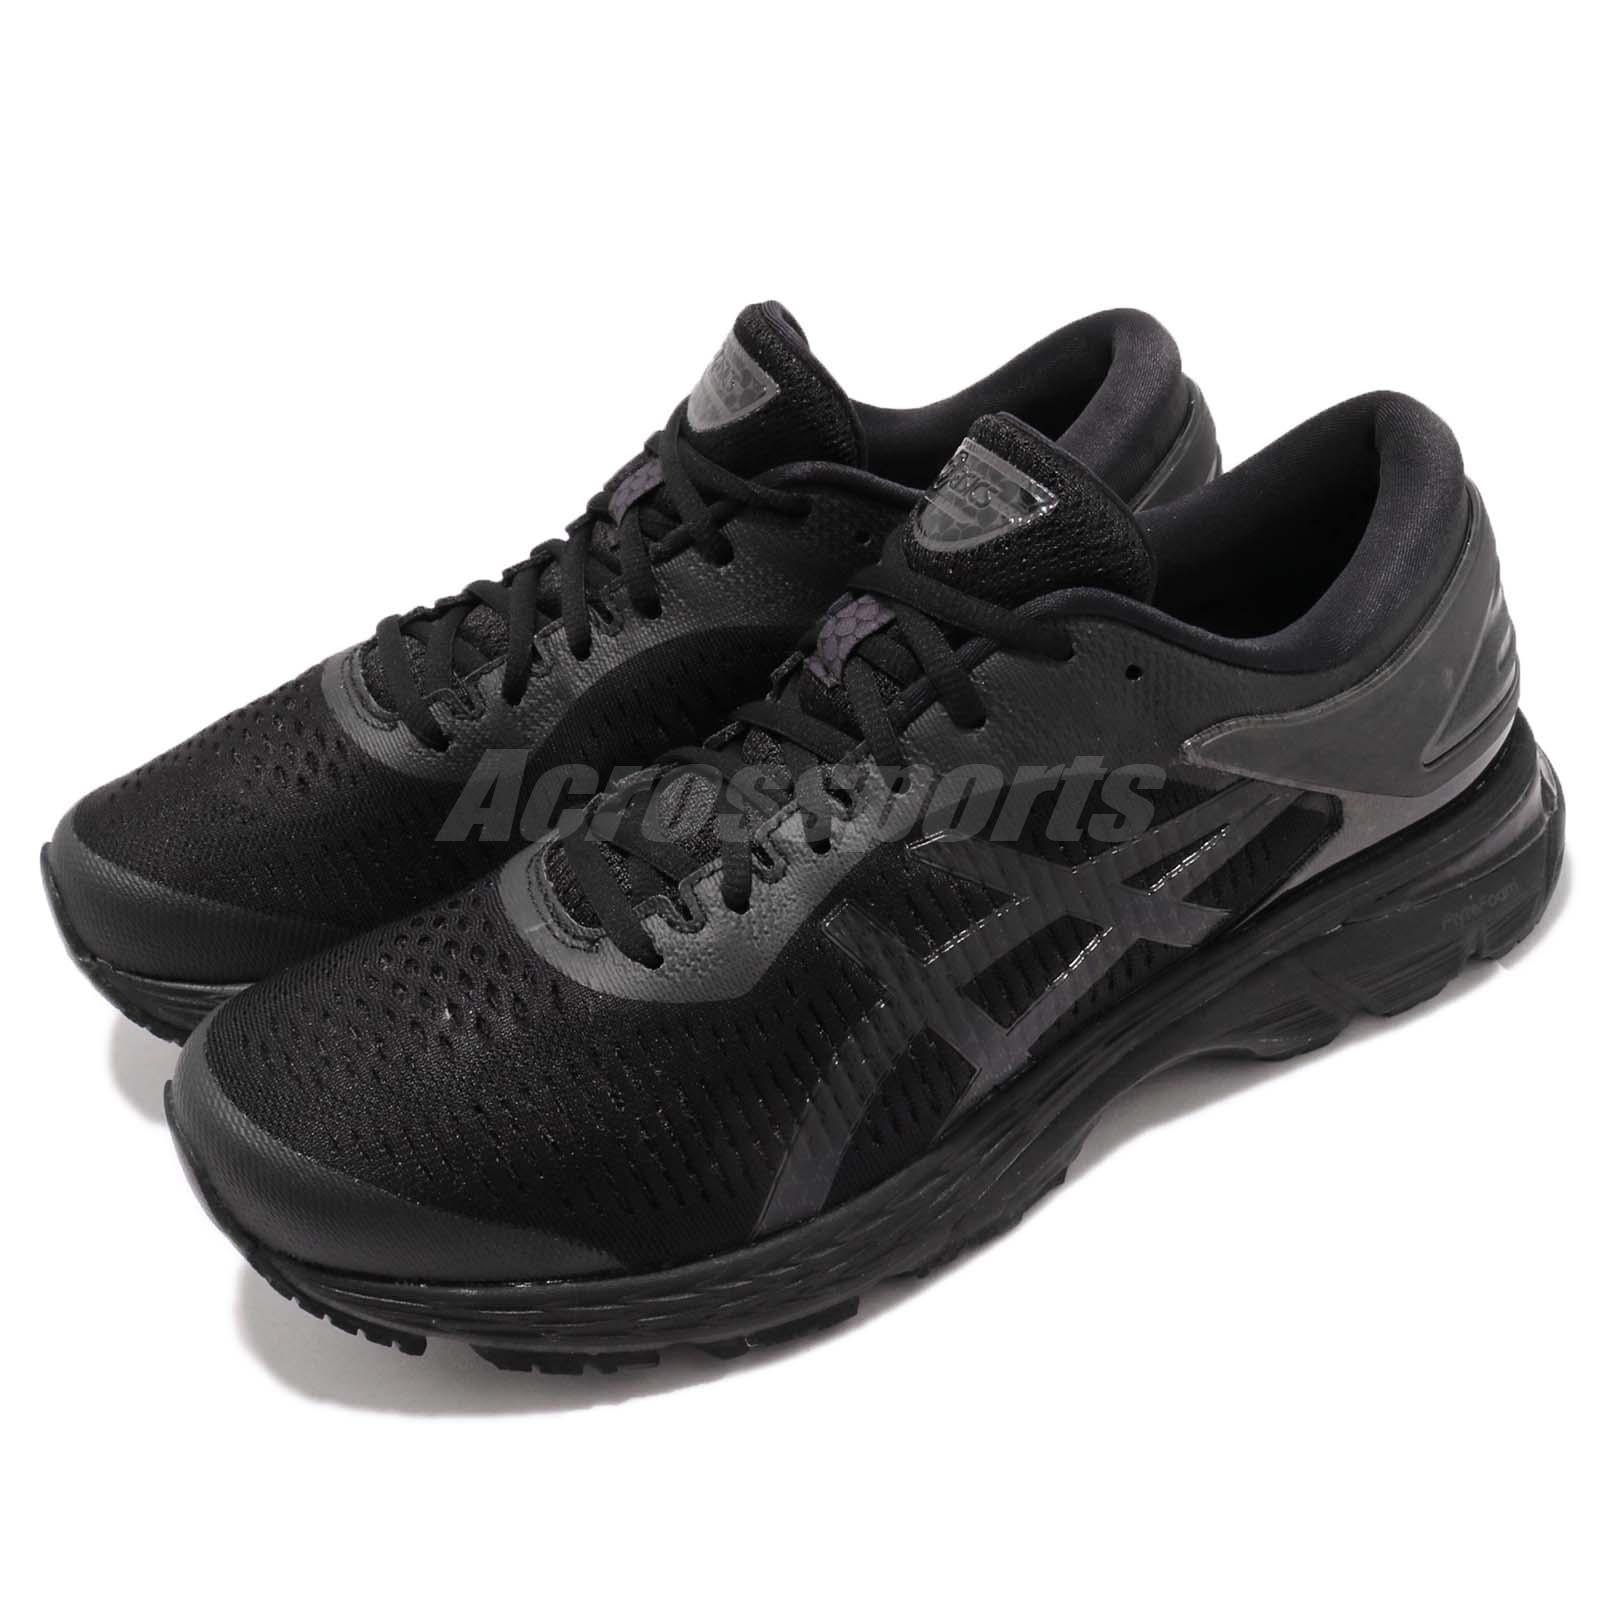 22537f92d Details about Asics Gel-Kayano 25 FlyteFoam Black Men Running Shoes  Sneakers 1011A01-9002